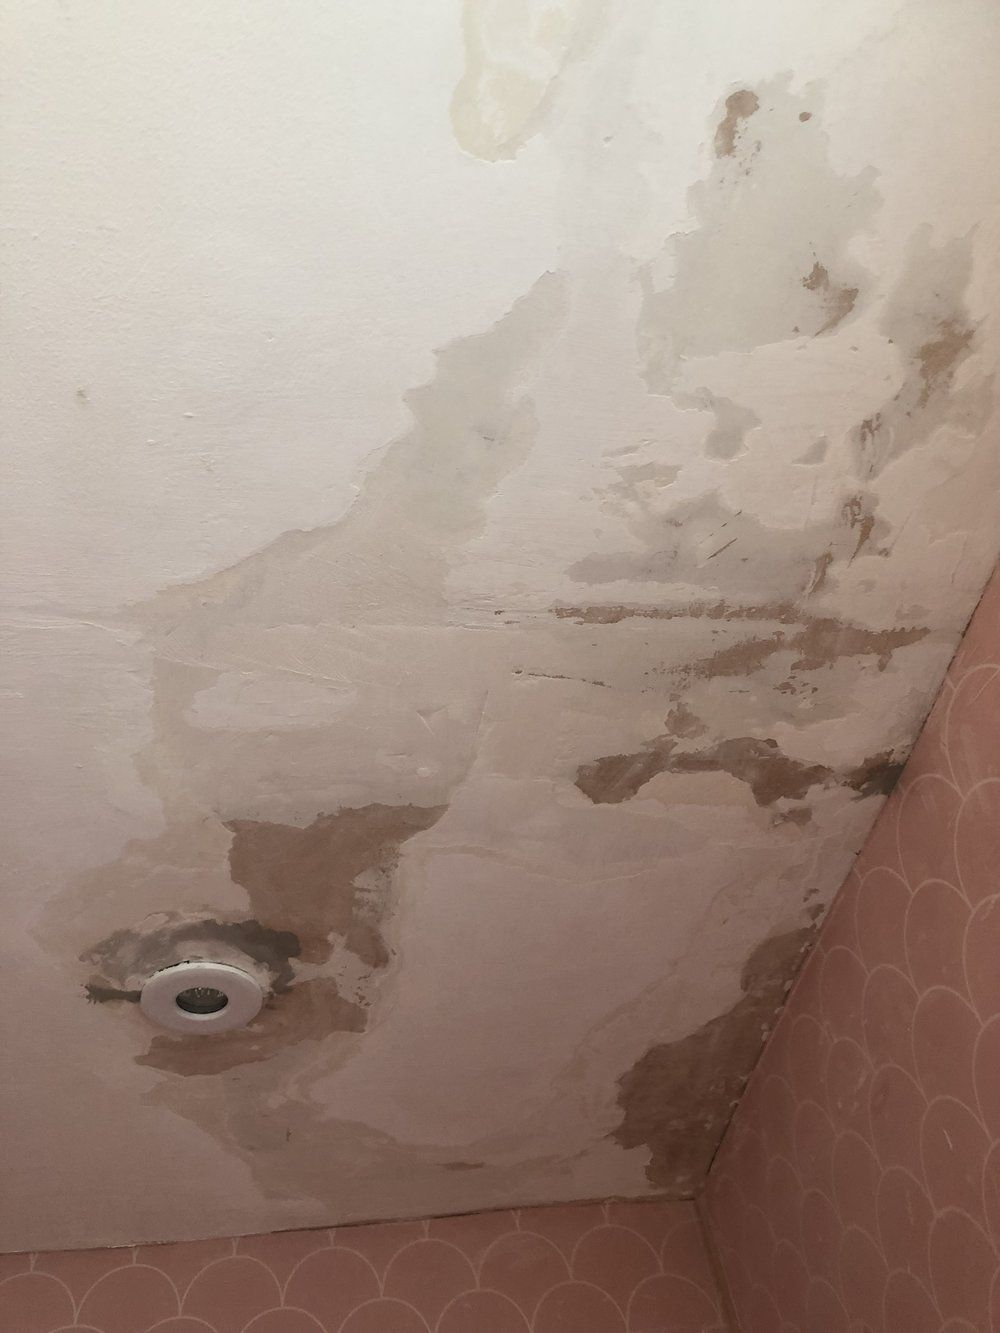 How To Repair A Peeling Bathroom Wall Or Ceiling In 2020 Bathroom Wall Ceiling Peeling Wall